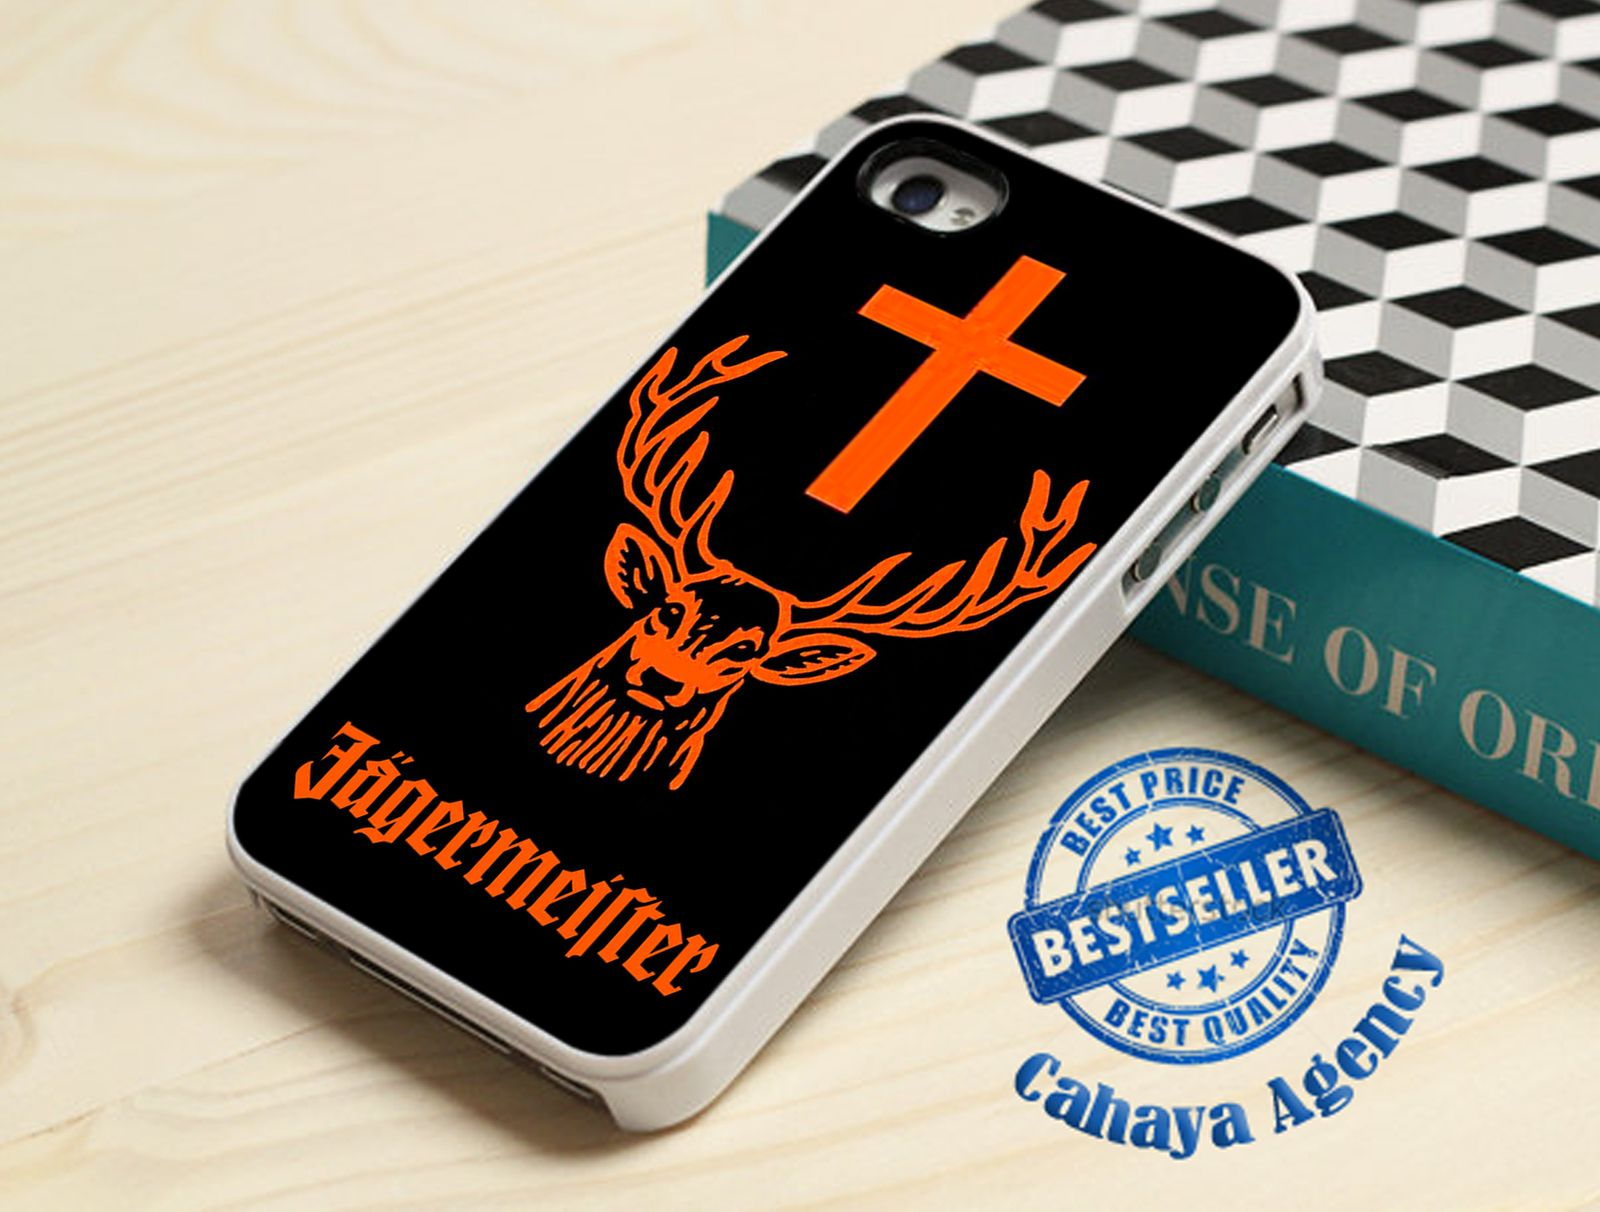 Jagermeister Logo iPhone 4,4s,5,5s,5c,6,6 plus,Samsung S3,S4,S5,iPod 4.5 Case